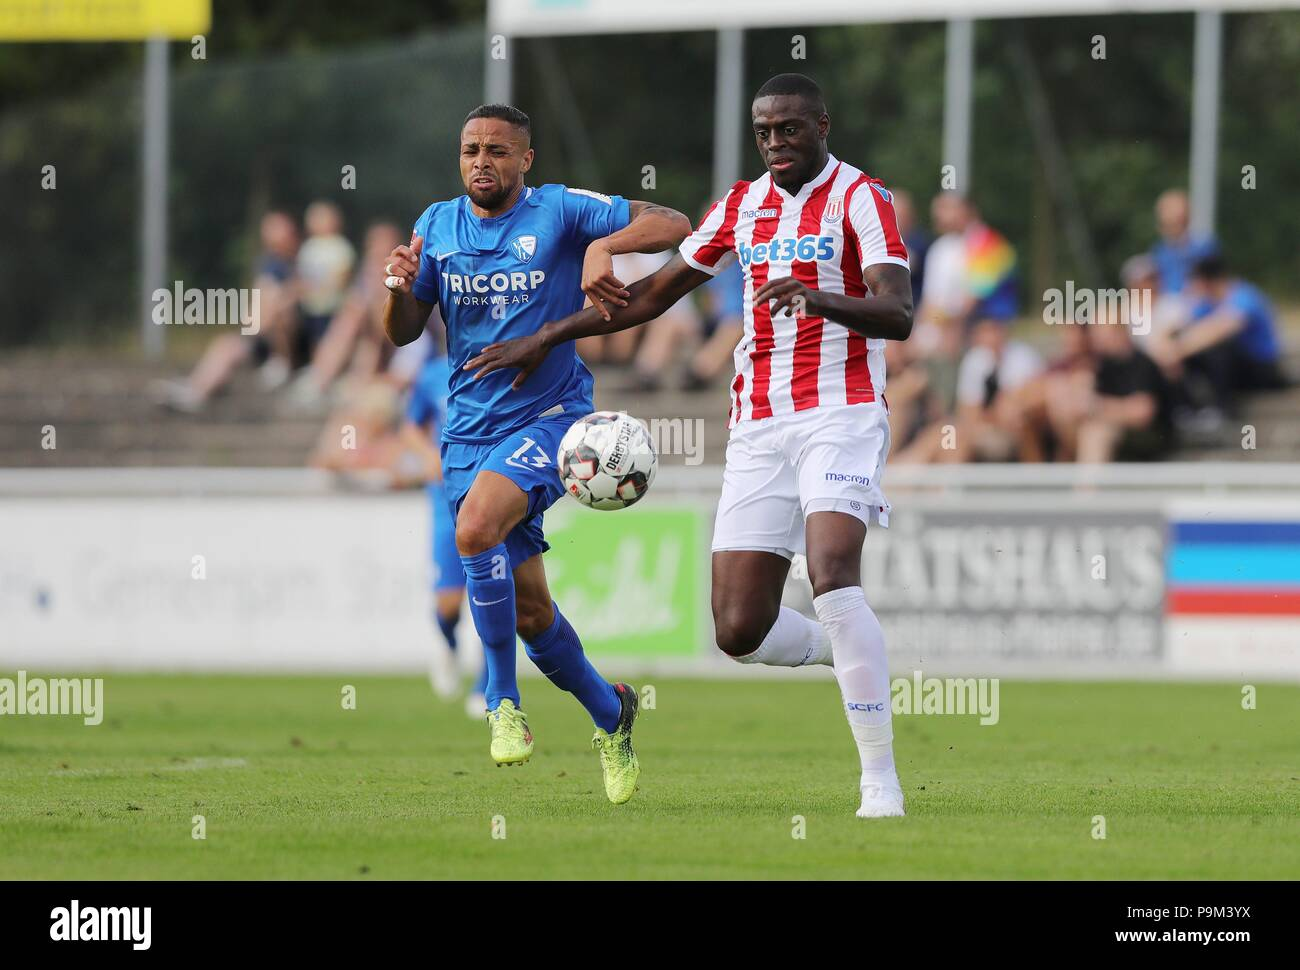 firo: 18.07.2018, Football, 2.Bundesliga, season 2018/2019, VfL Bochum - Stoke City in Rheine Sidney SAM | usage worldwide - Stock Image